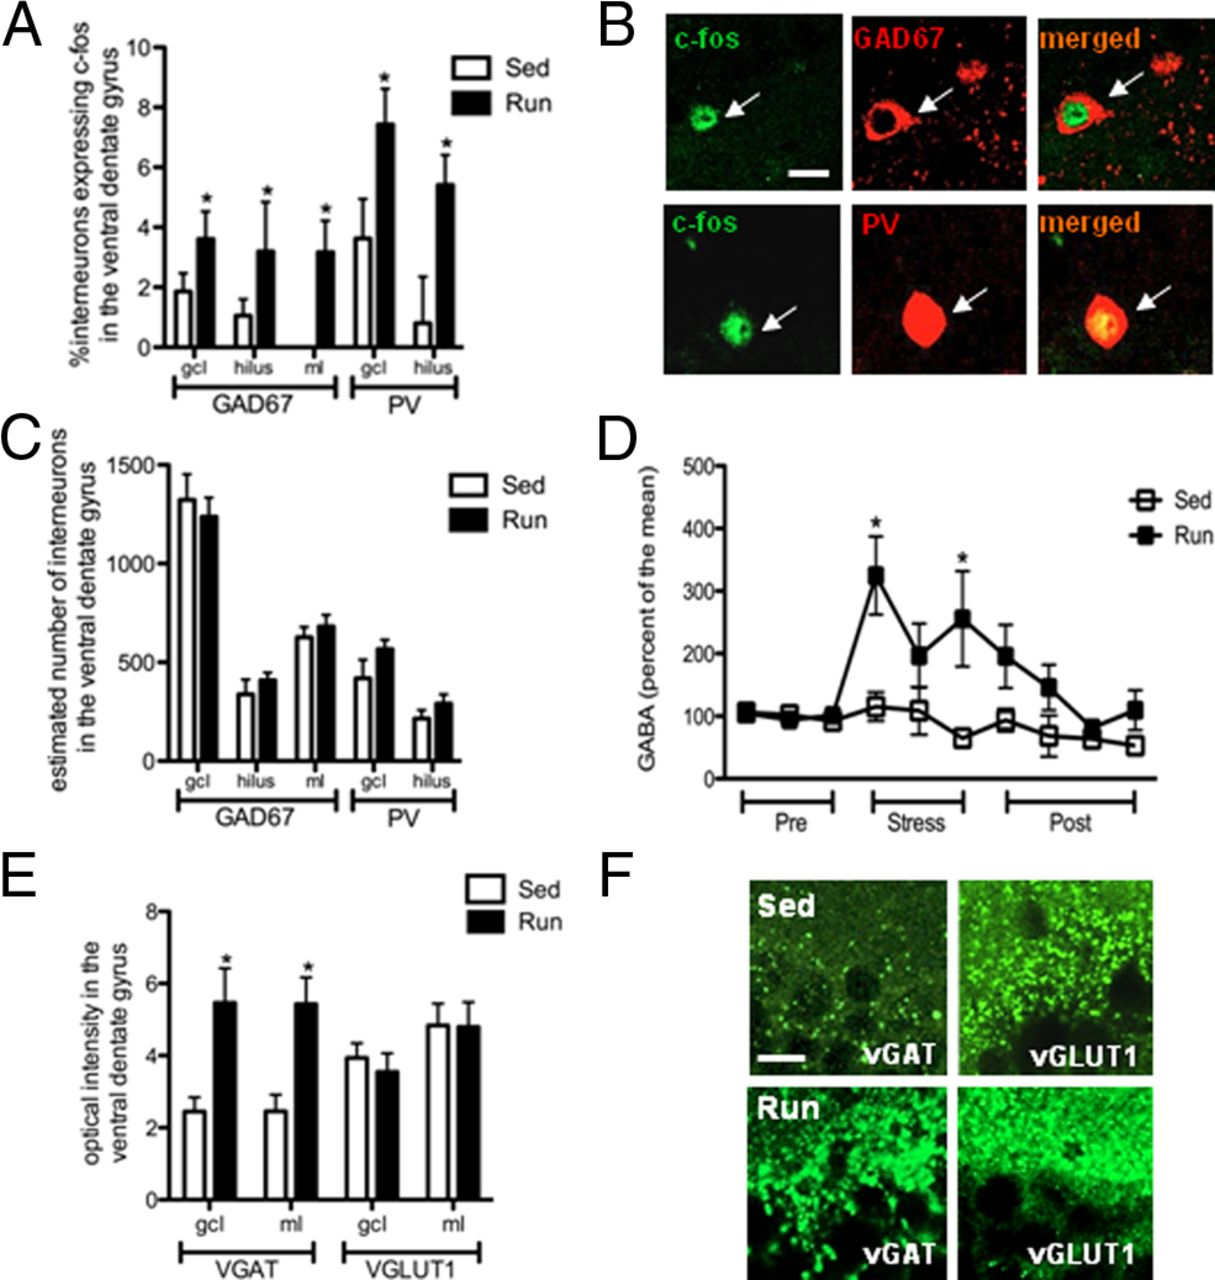 Physical Exercise Prevents Stress-Induced Activation of Granule